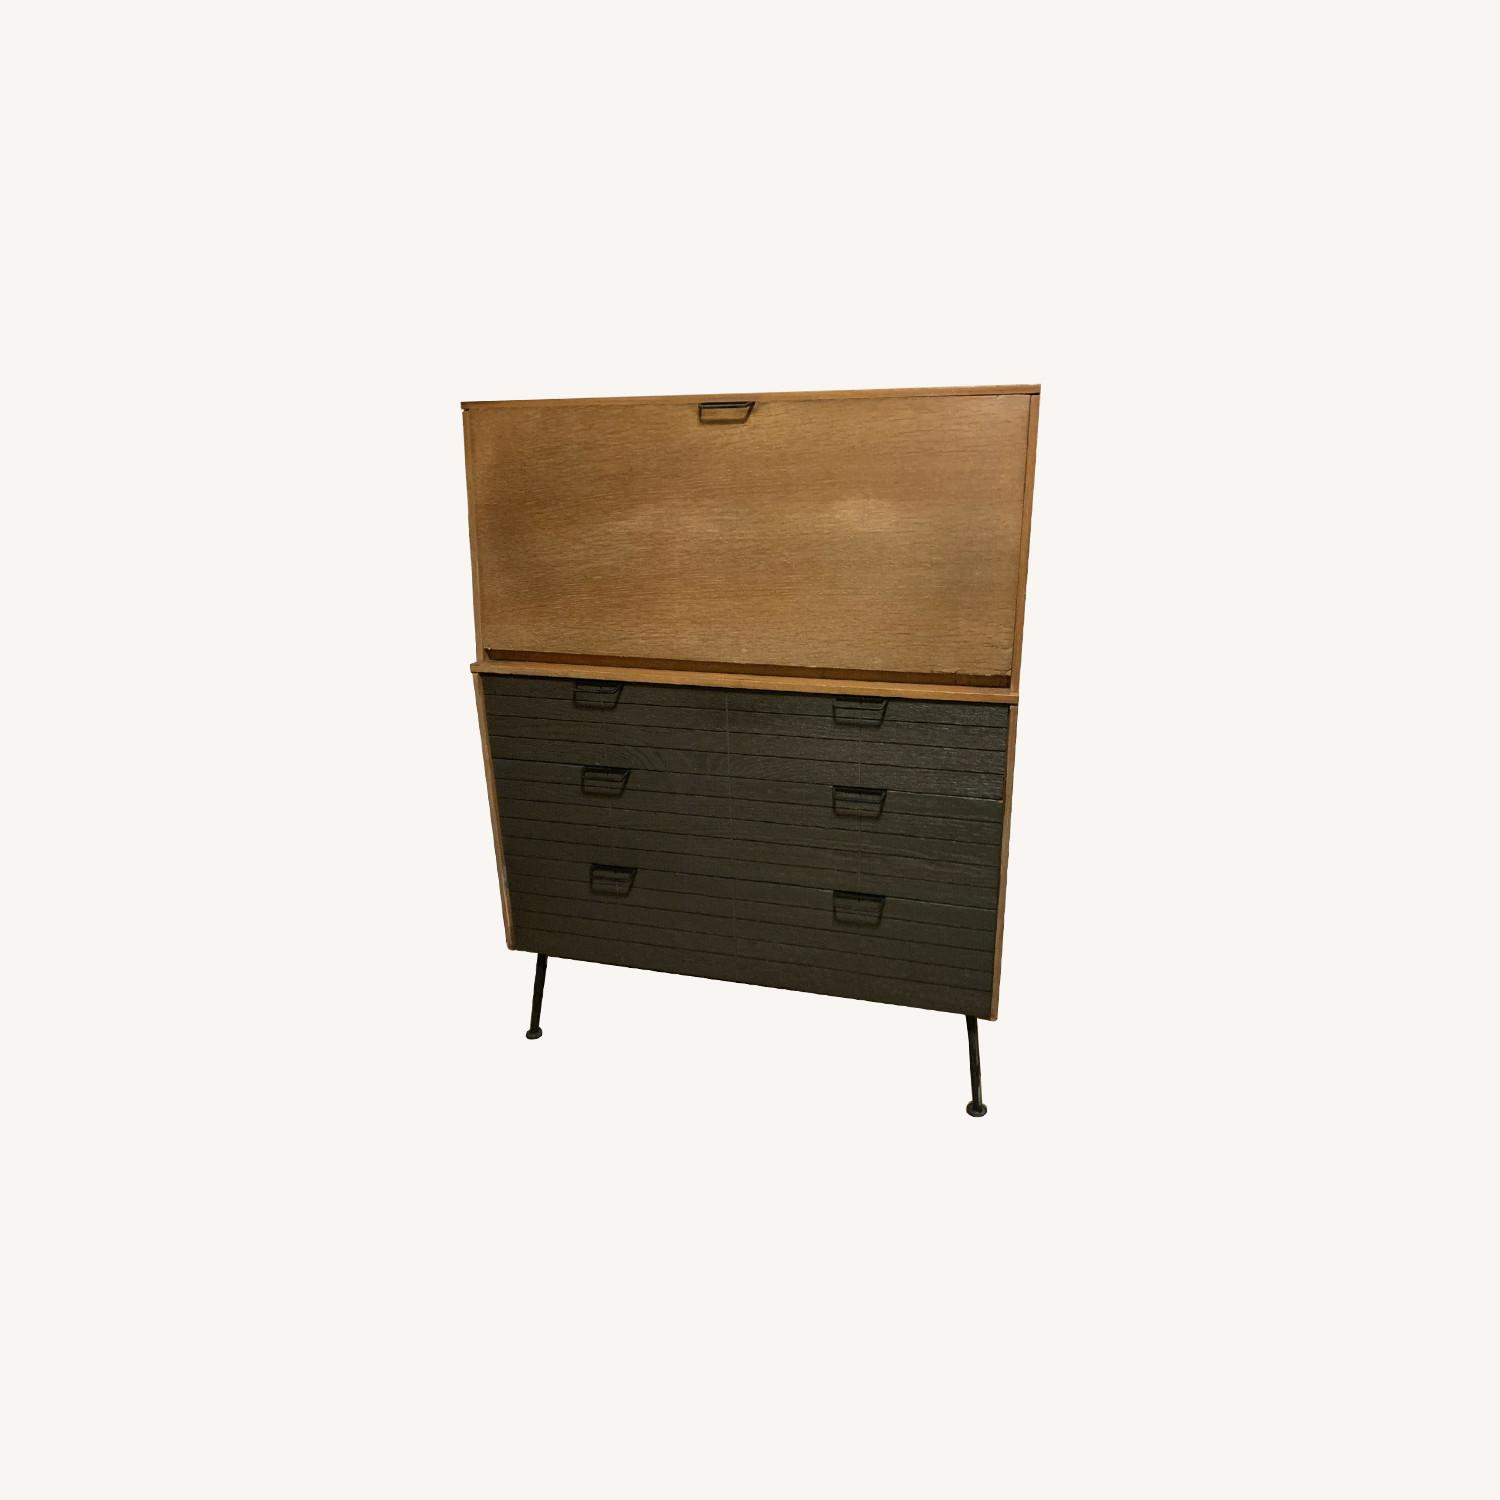 1950s MCM Desk by Raymond Loewy for Mengel - image-0